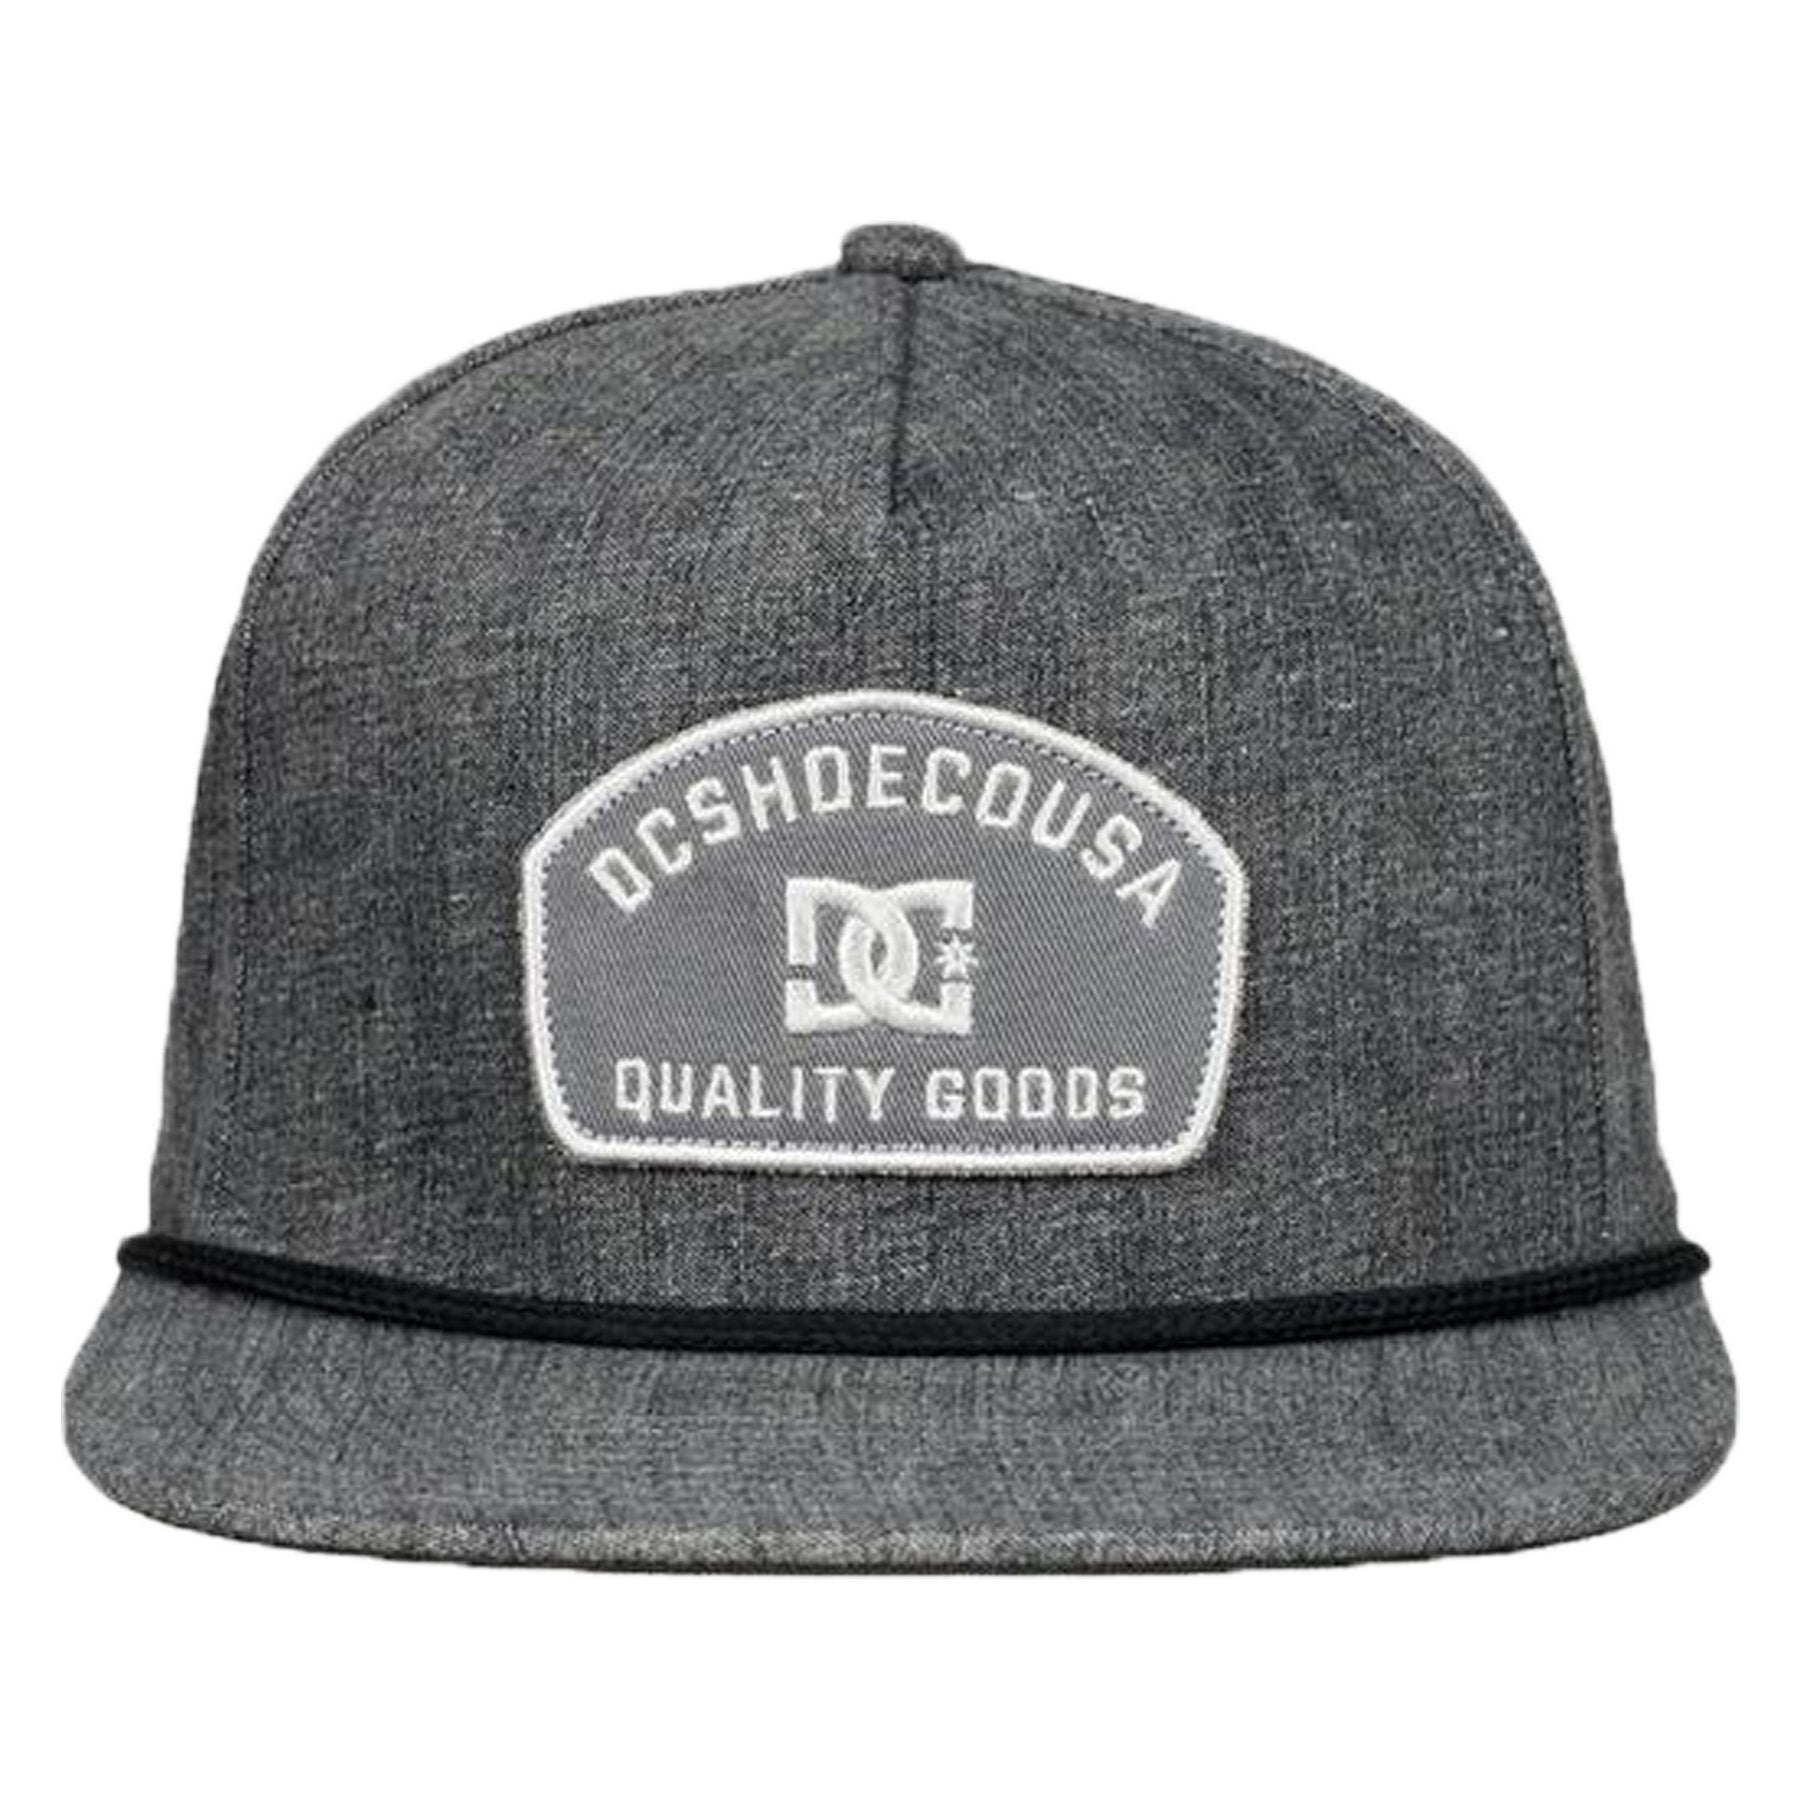 Surf Shop, Surf Clothing, DC Shoes, Denimo, Cap, Black